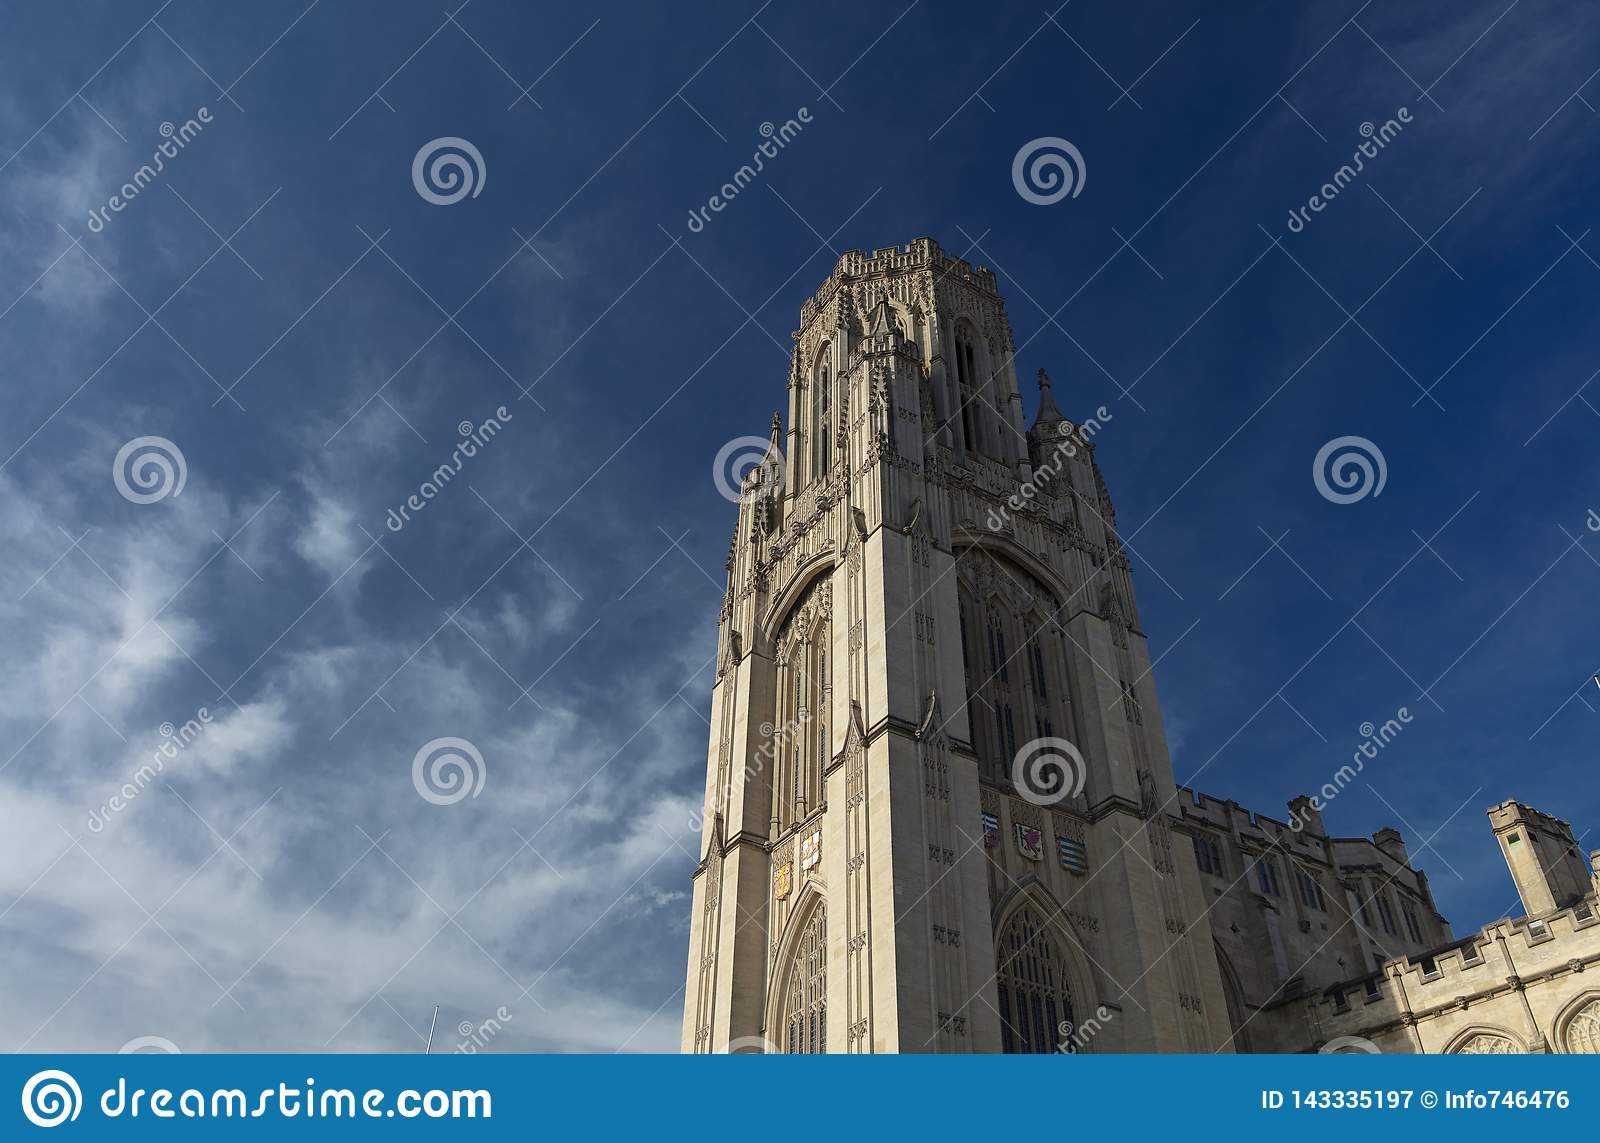 Bristol, United Kingdom, 21st February 2019, Wills Memorial Building Tower at the University of Bristol